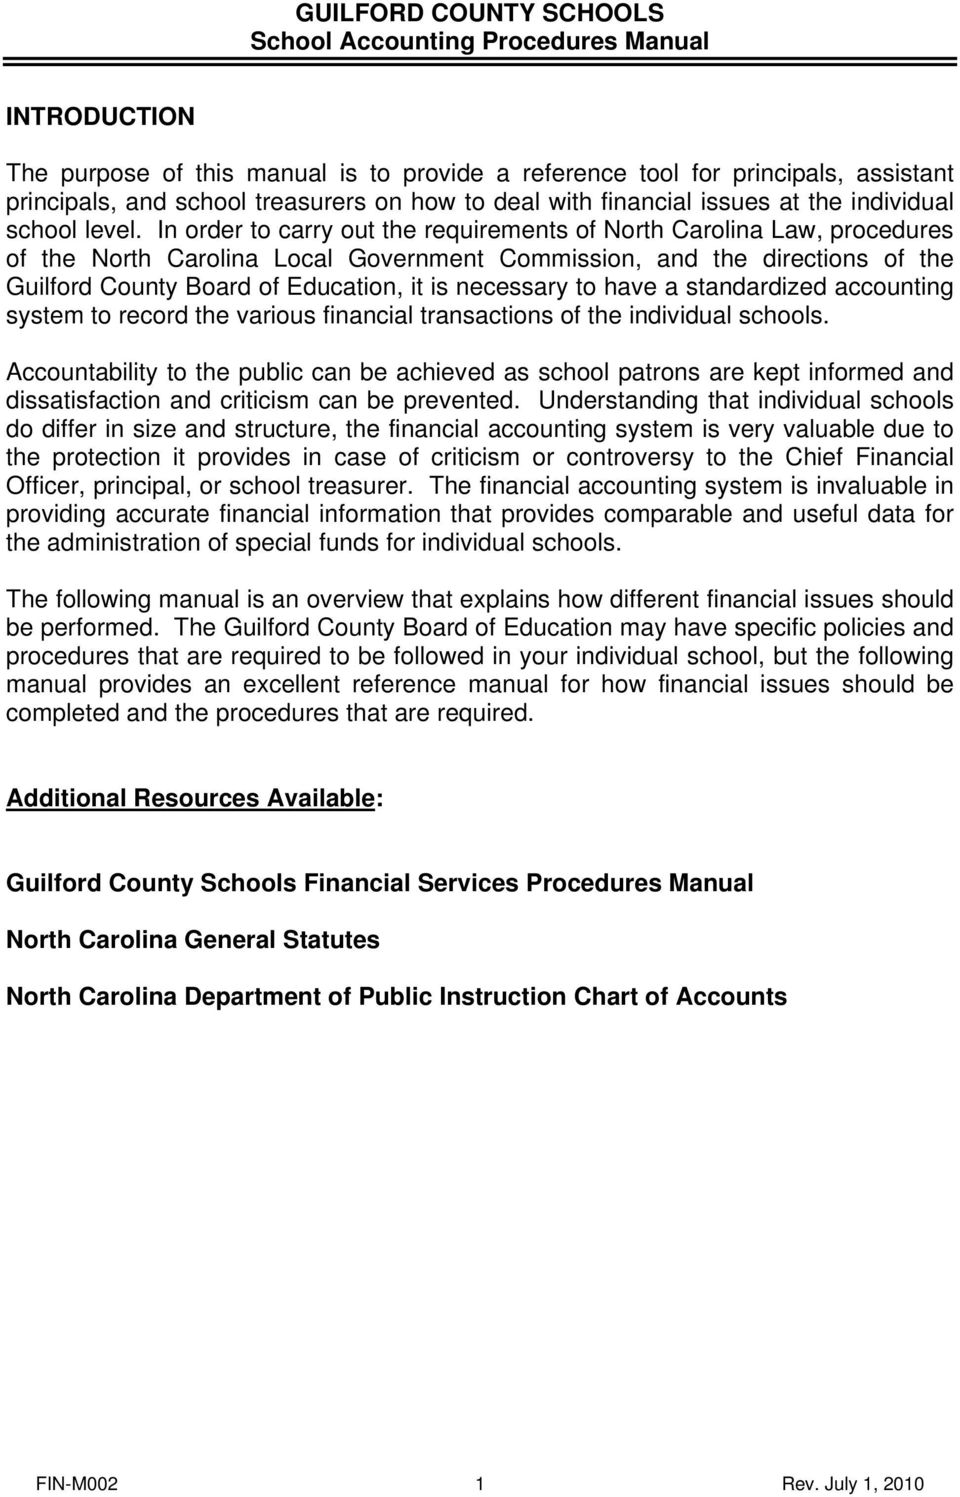 necessary to have a standardized accounting system to record the various financial transactions of the individual schools.